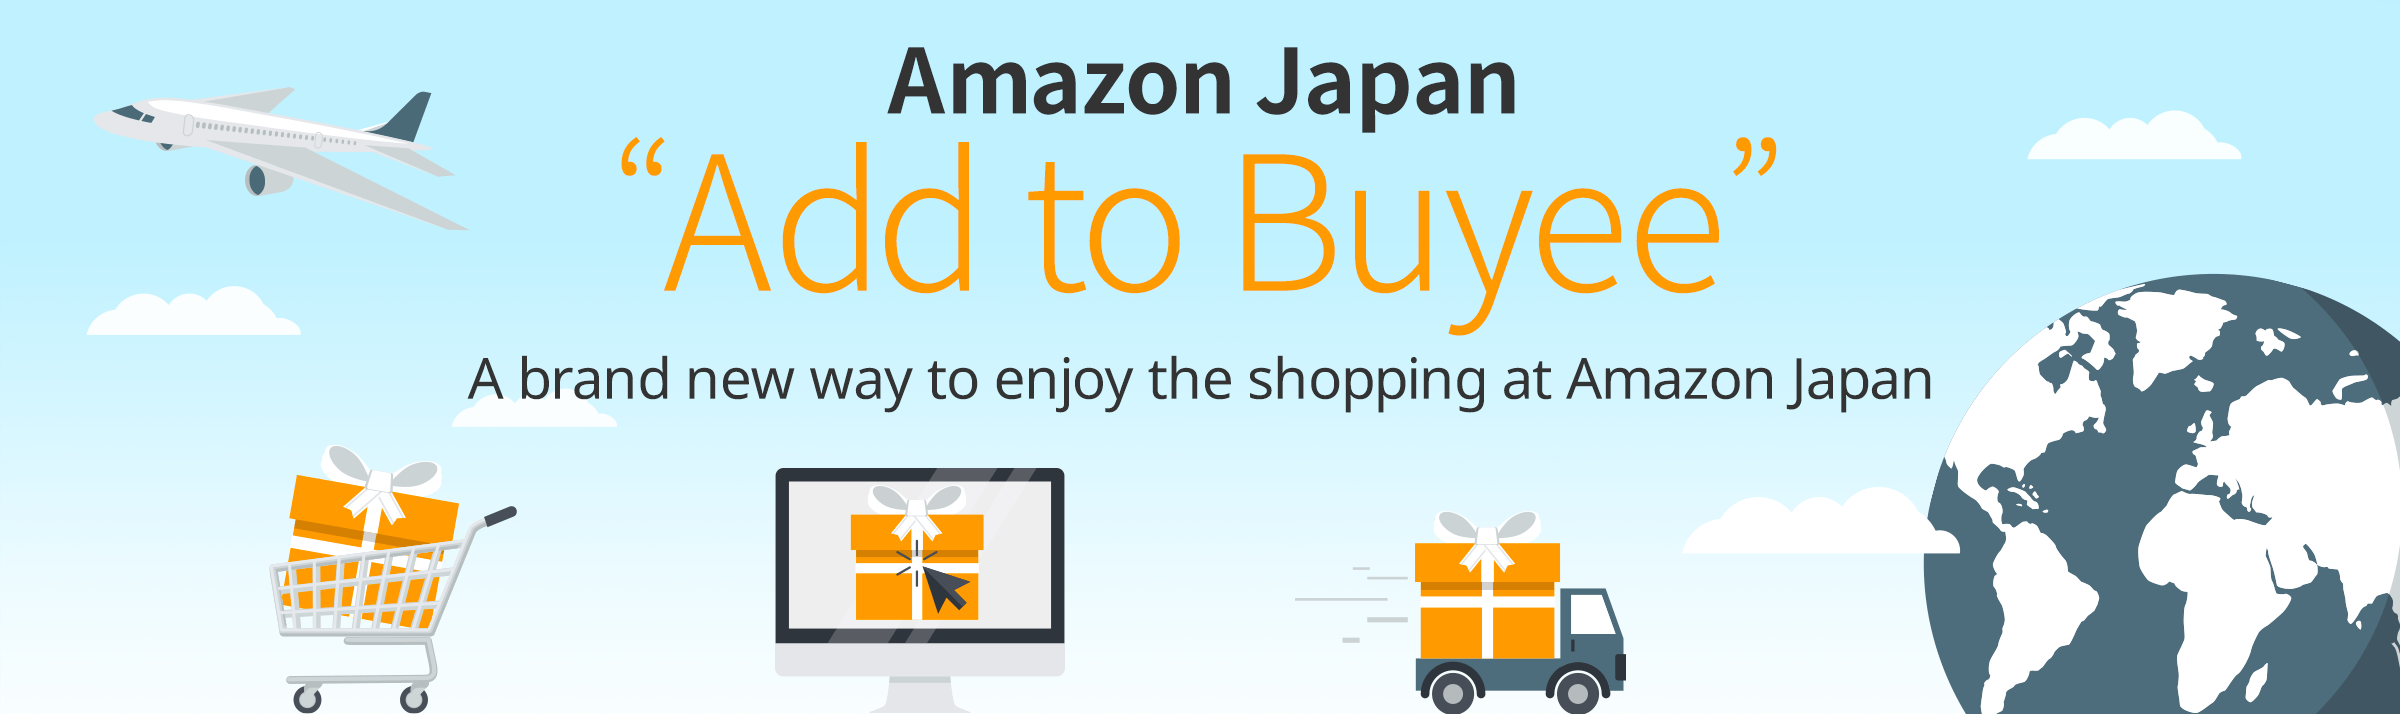 "Amazon Japan ""Add to Buyee"" A brand new way to enjoy the shopping at Amazon Japan"